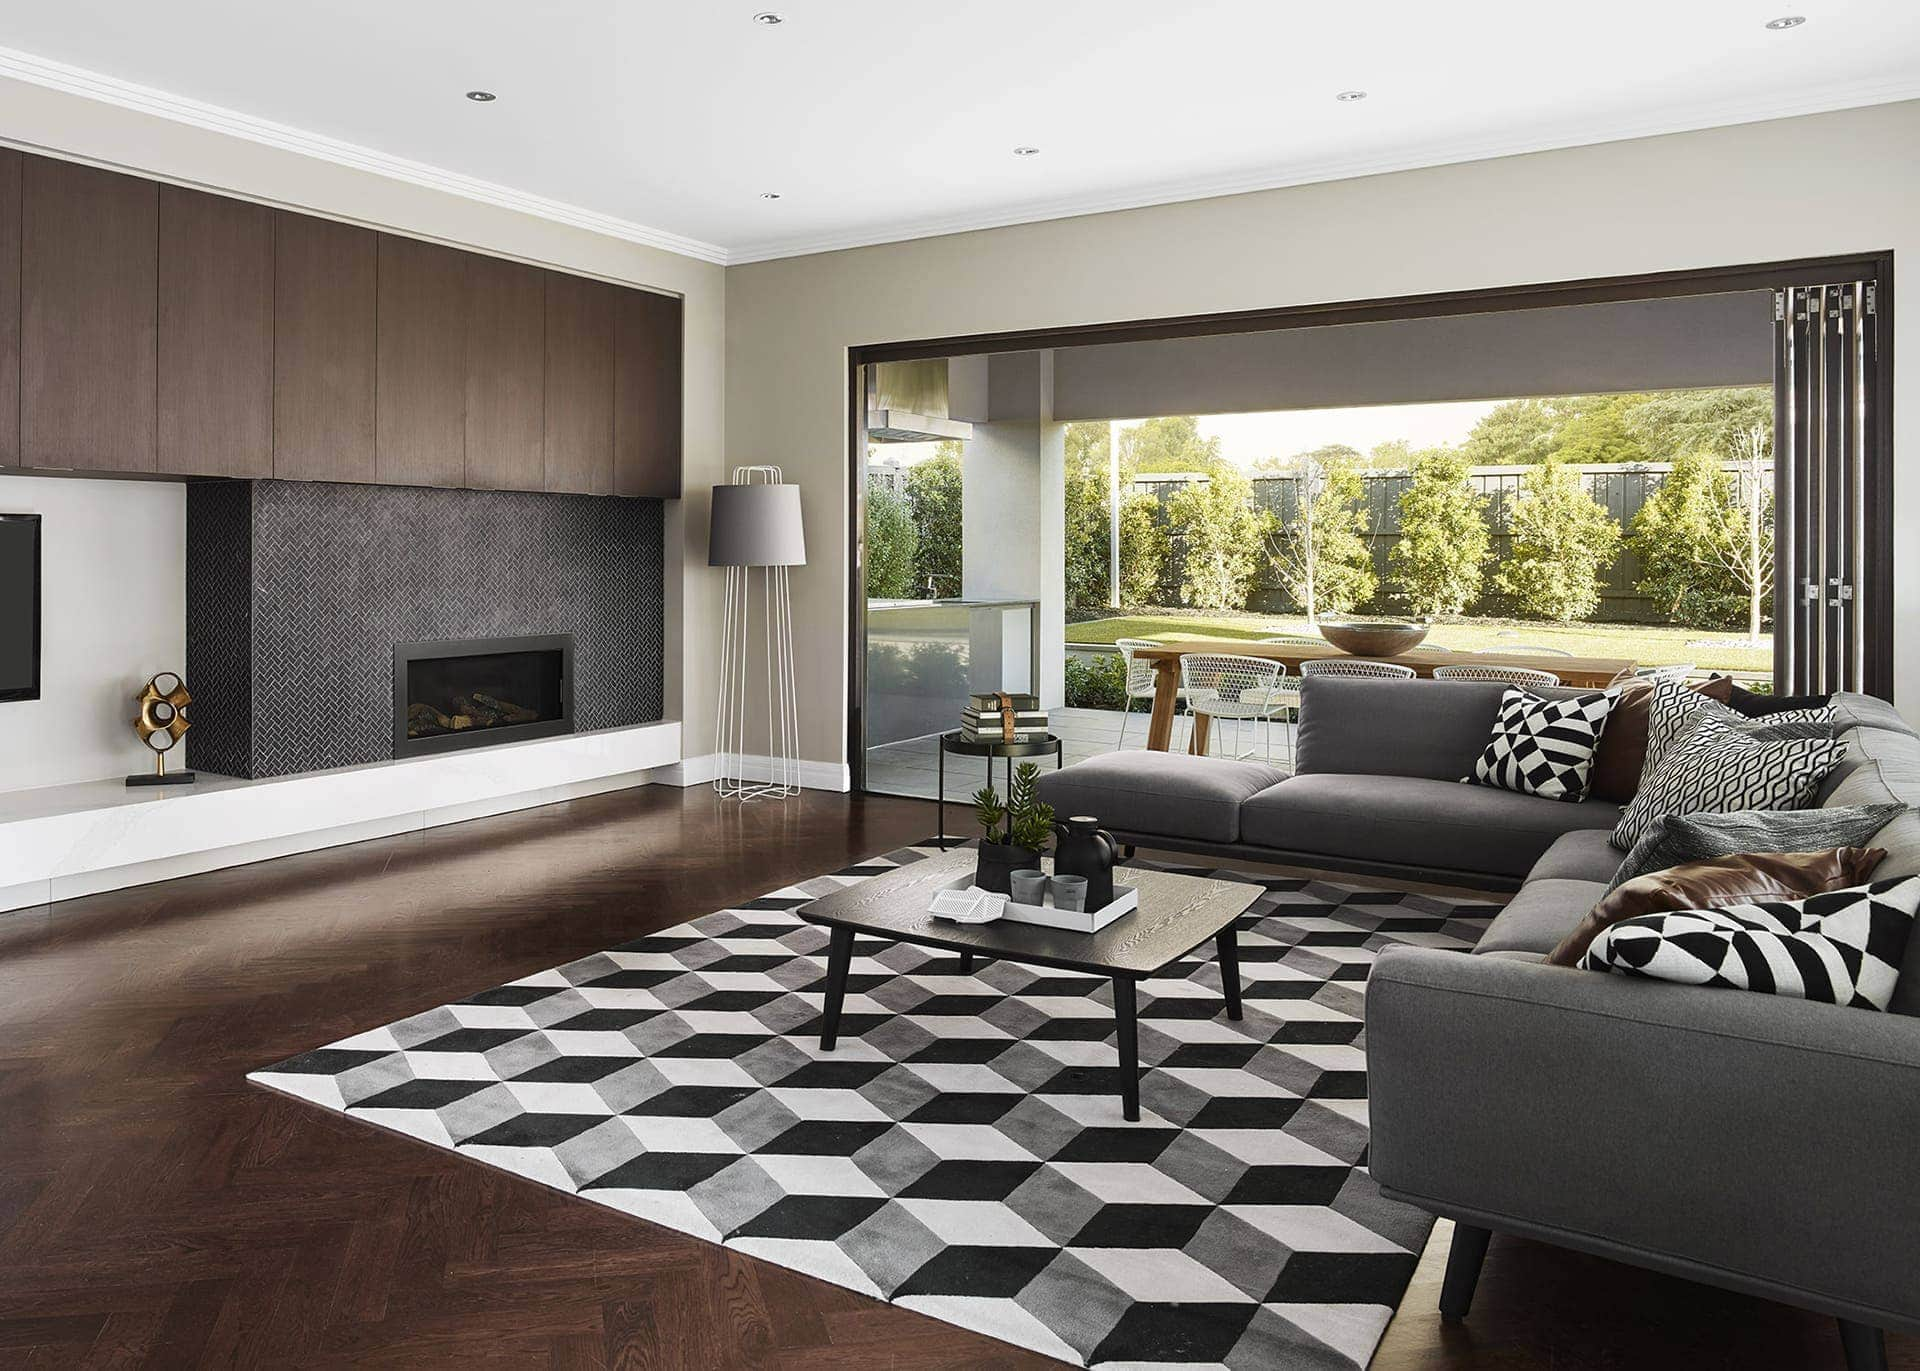 black and white geometric rug in living room with dark herringbone timber floor